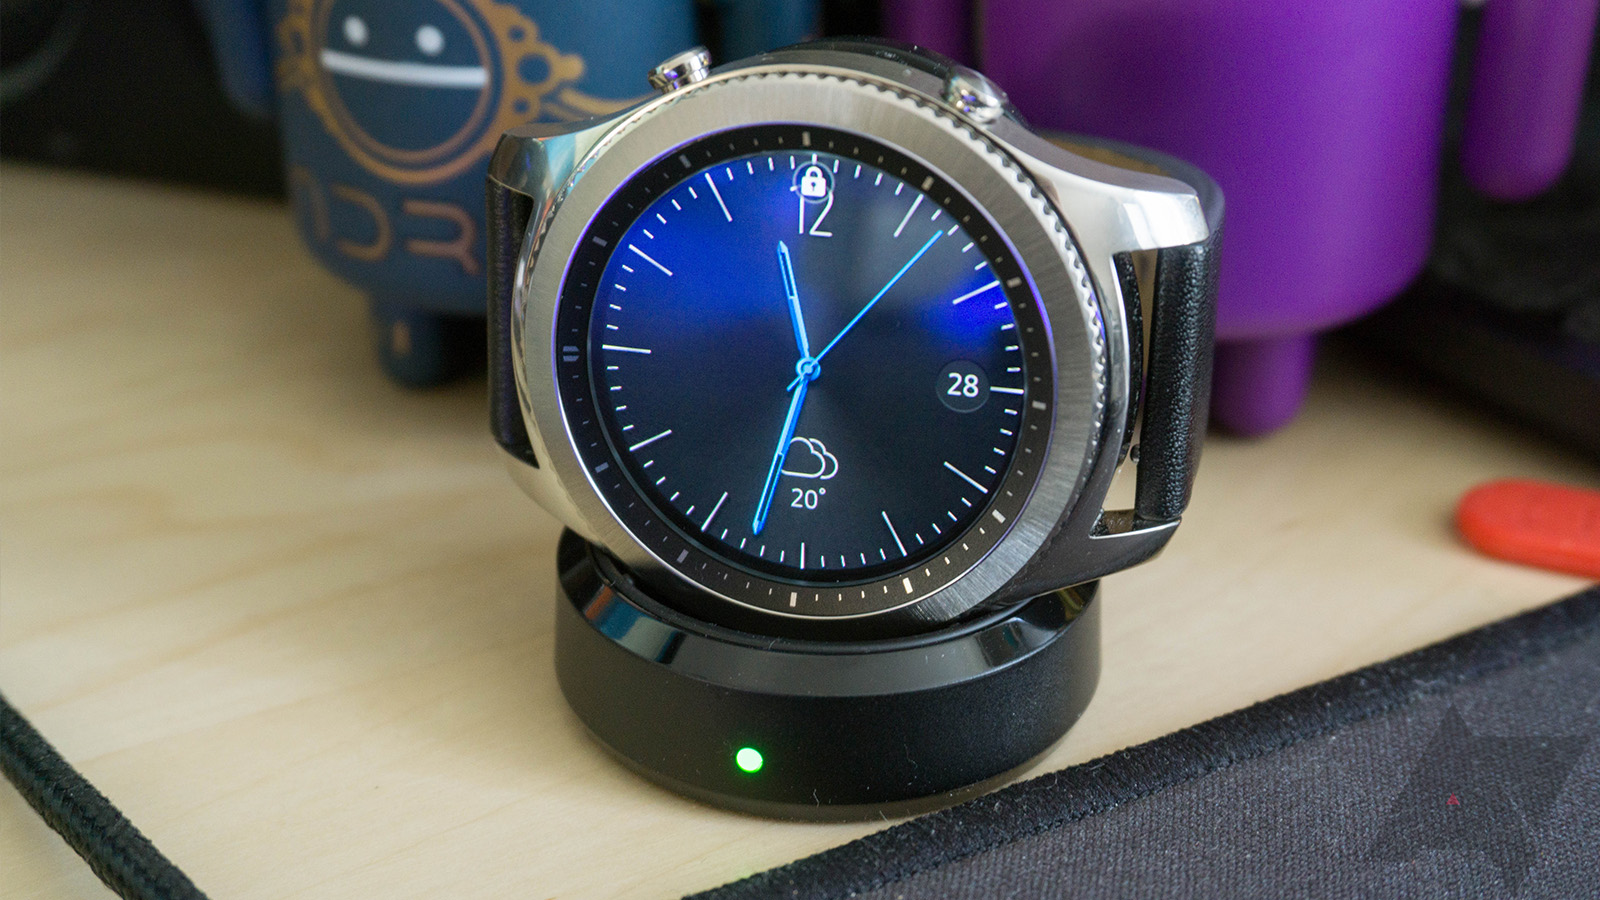 Gear S3 gets a substantial Tizen update full of UI improvements and other changes